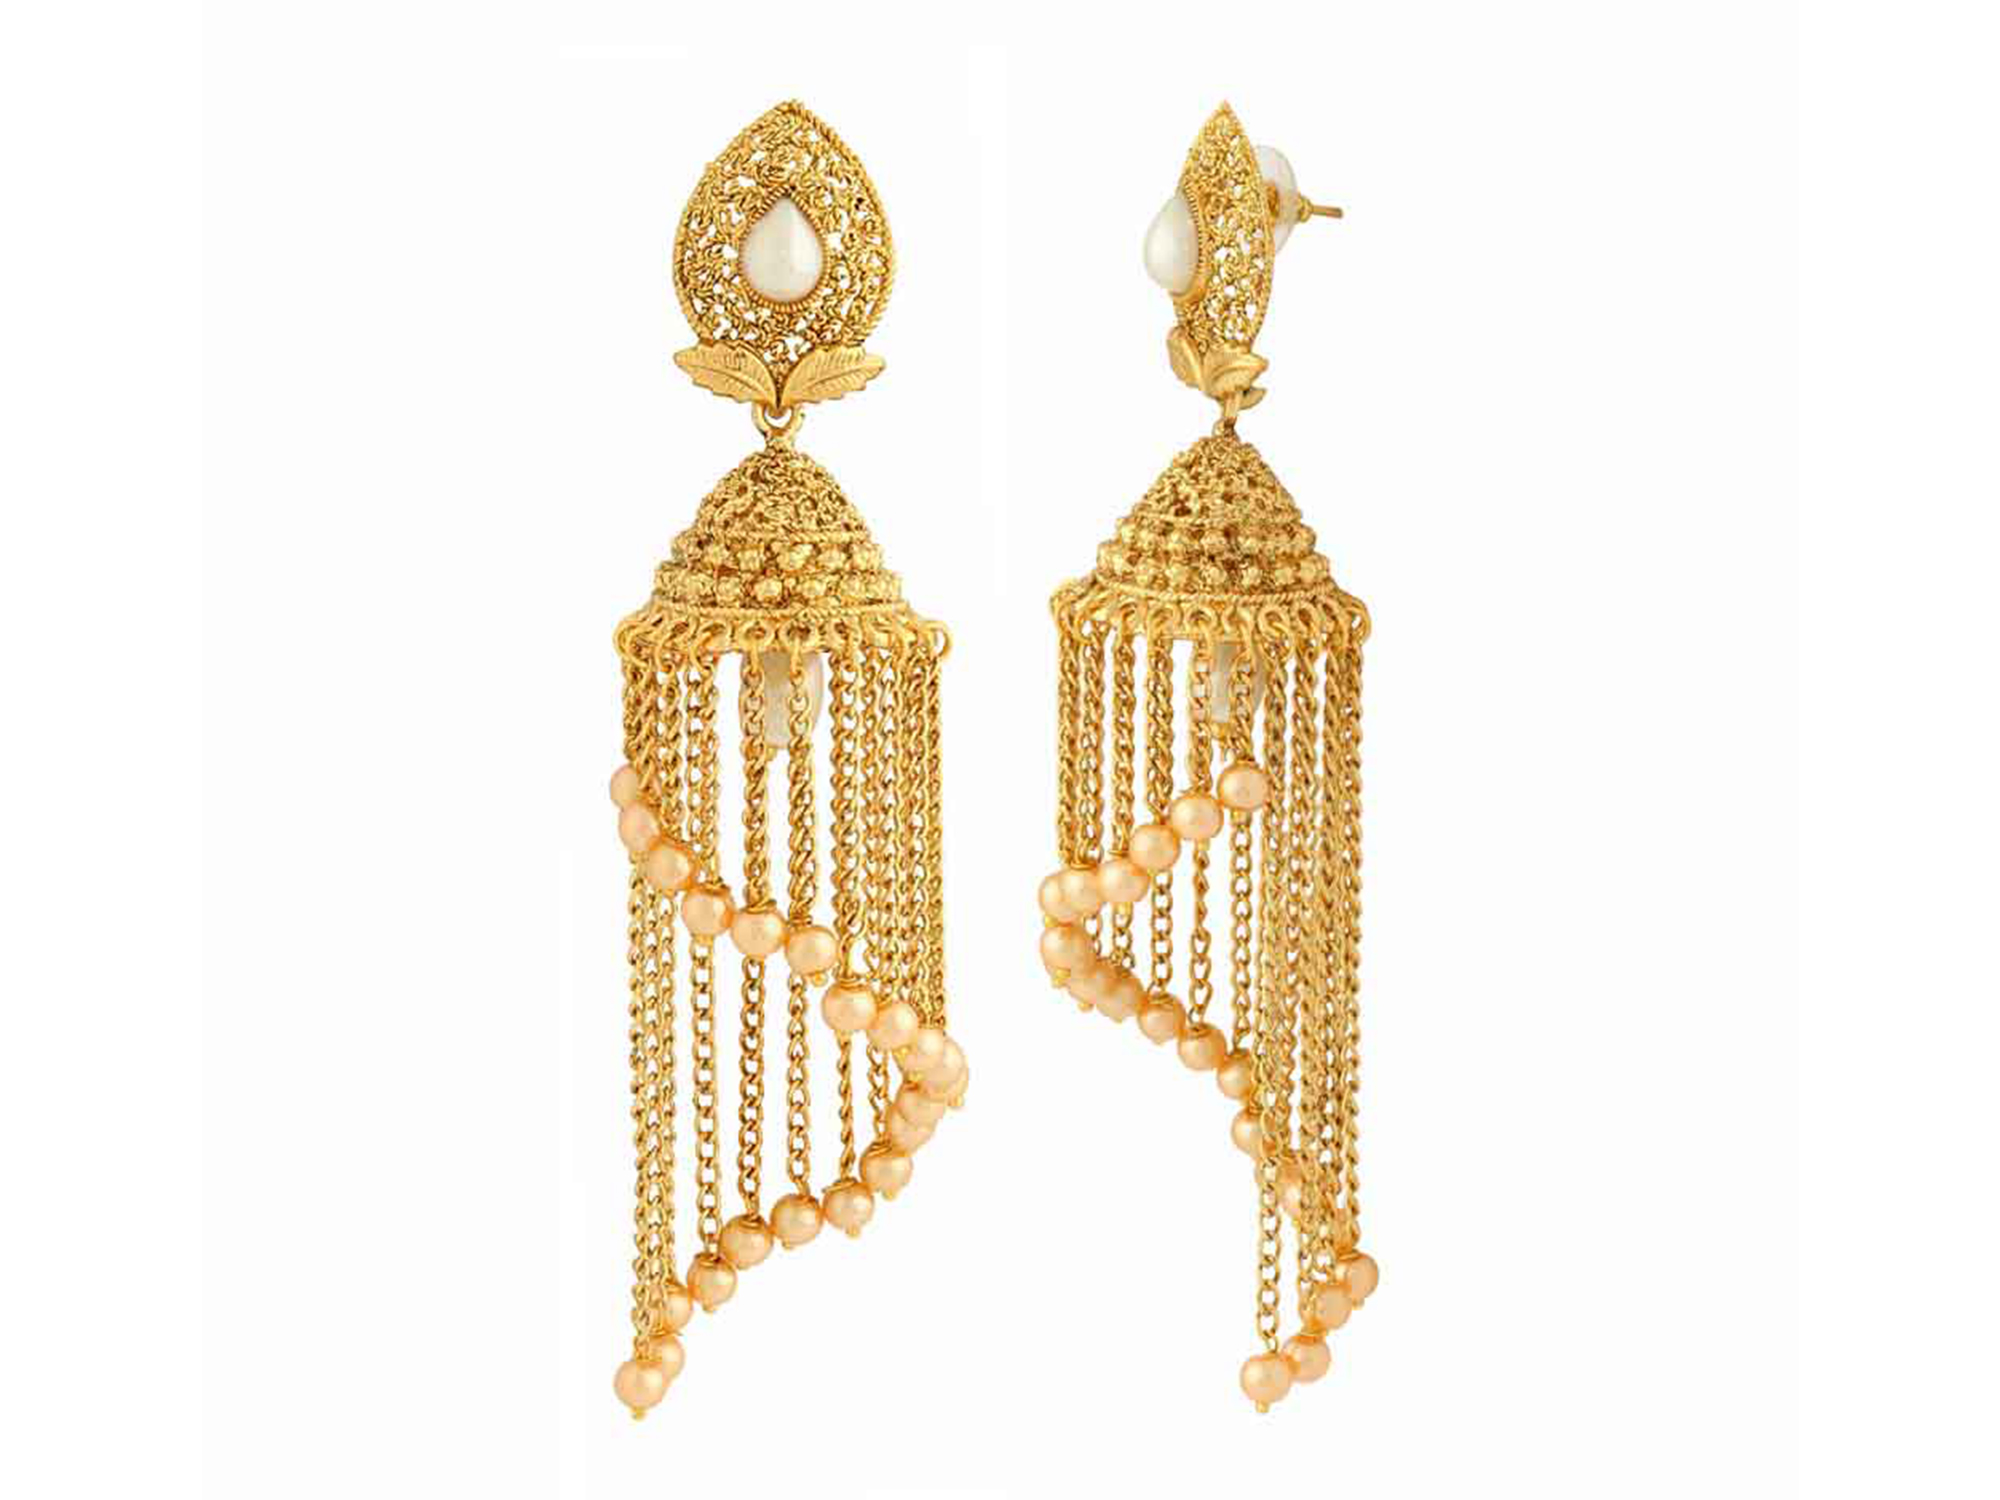 Antique Gold Plated Ethnic Zinc Alloy Earrings